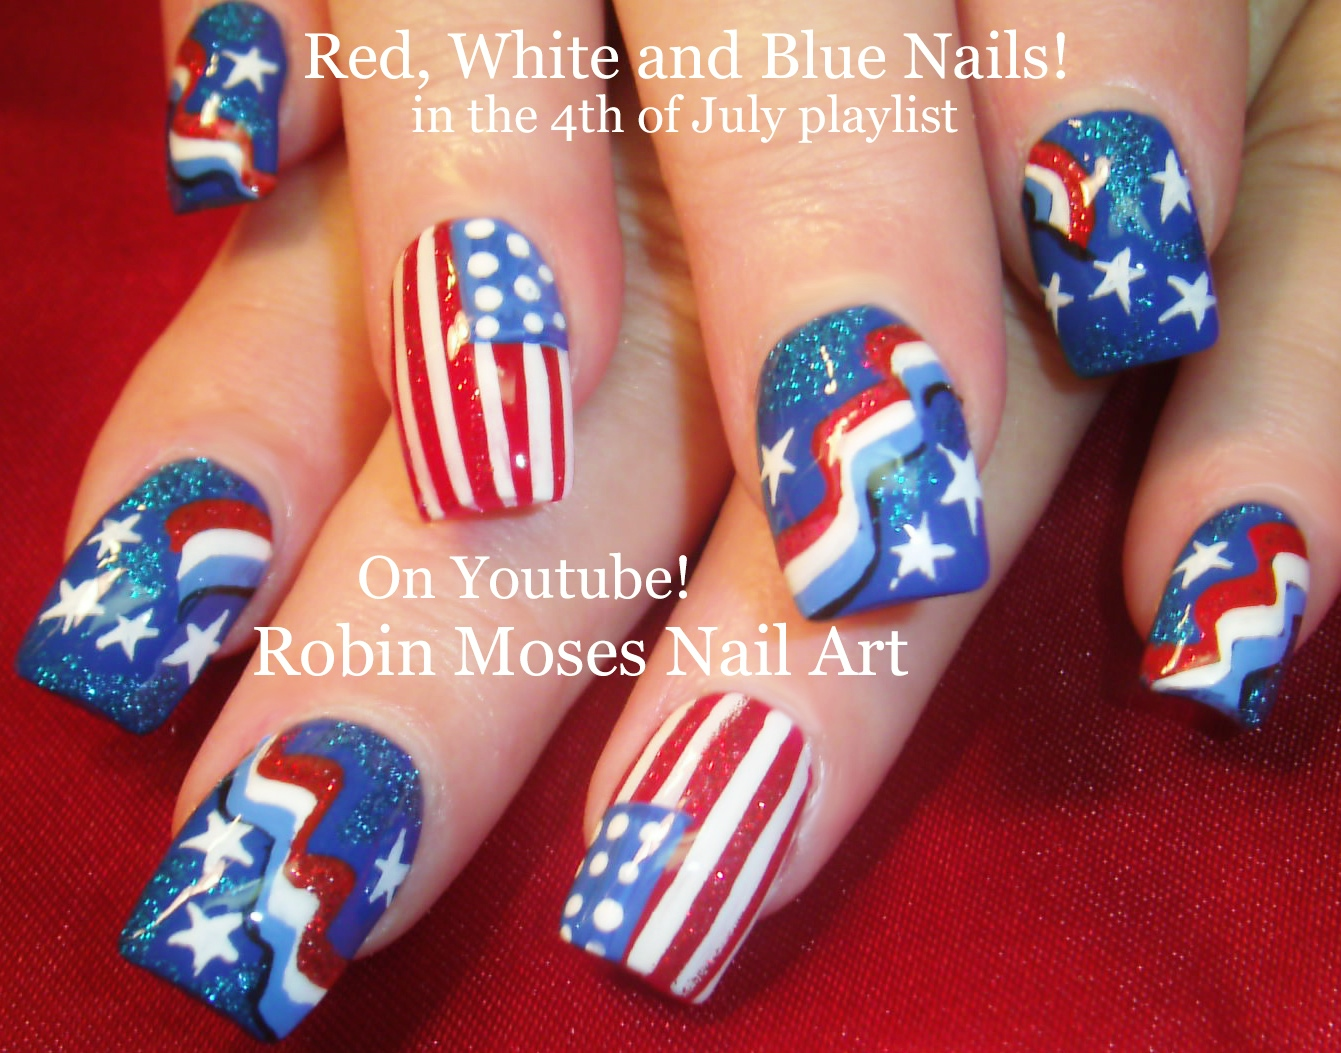 Robin moses nail art 4th of july nail tutorial up today red 4th of july nail tutorial up today red white and blue banners with flag nail design prinsesfo Images